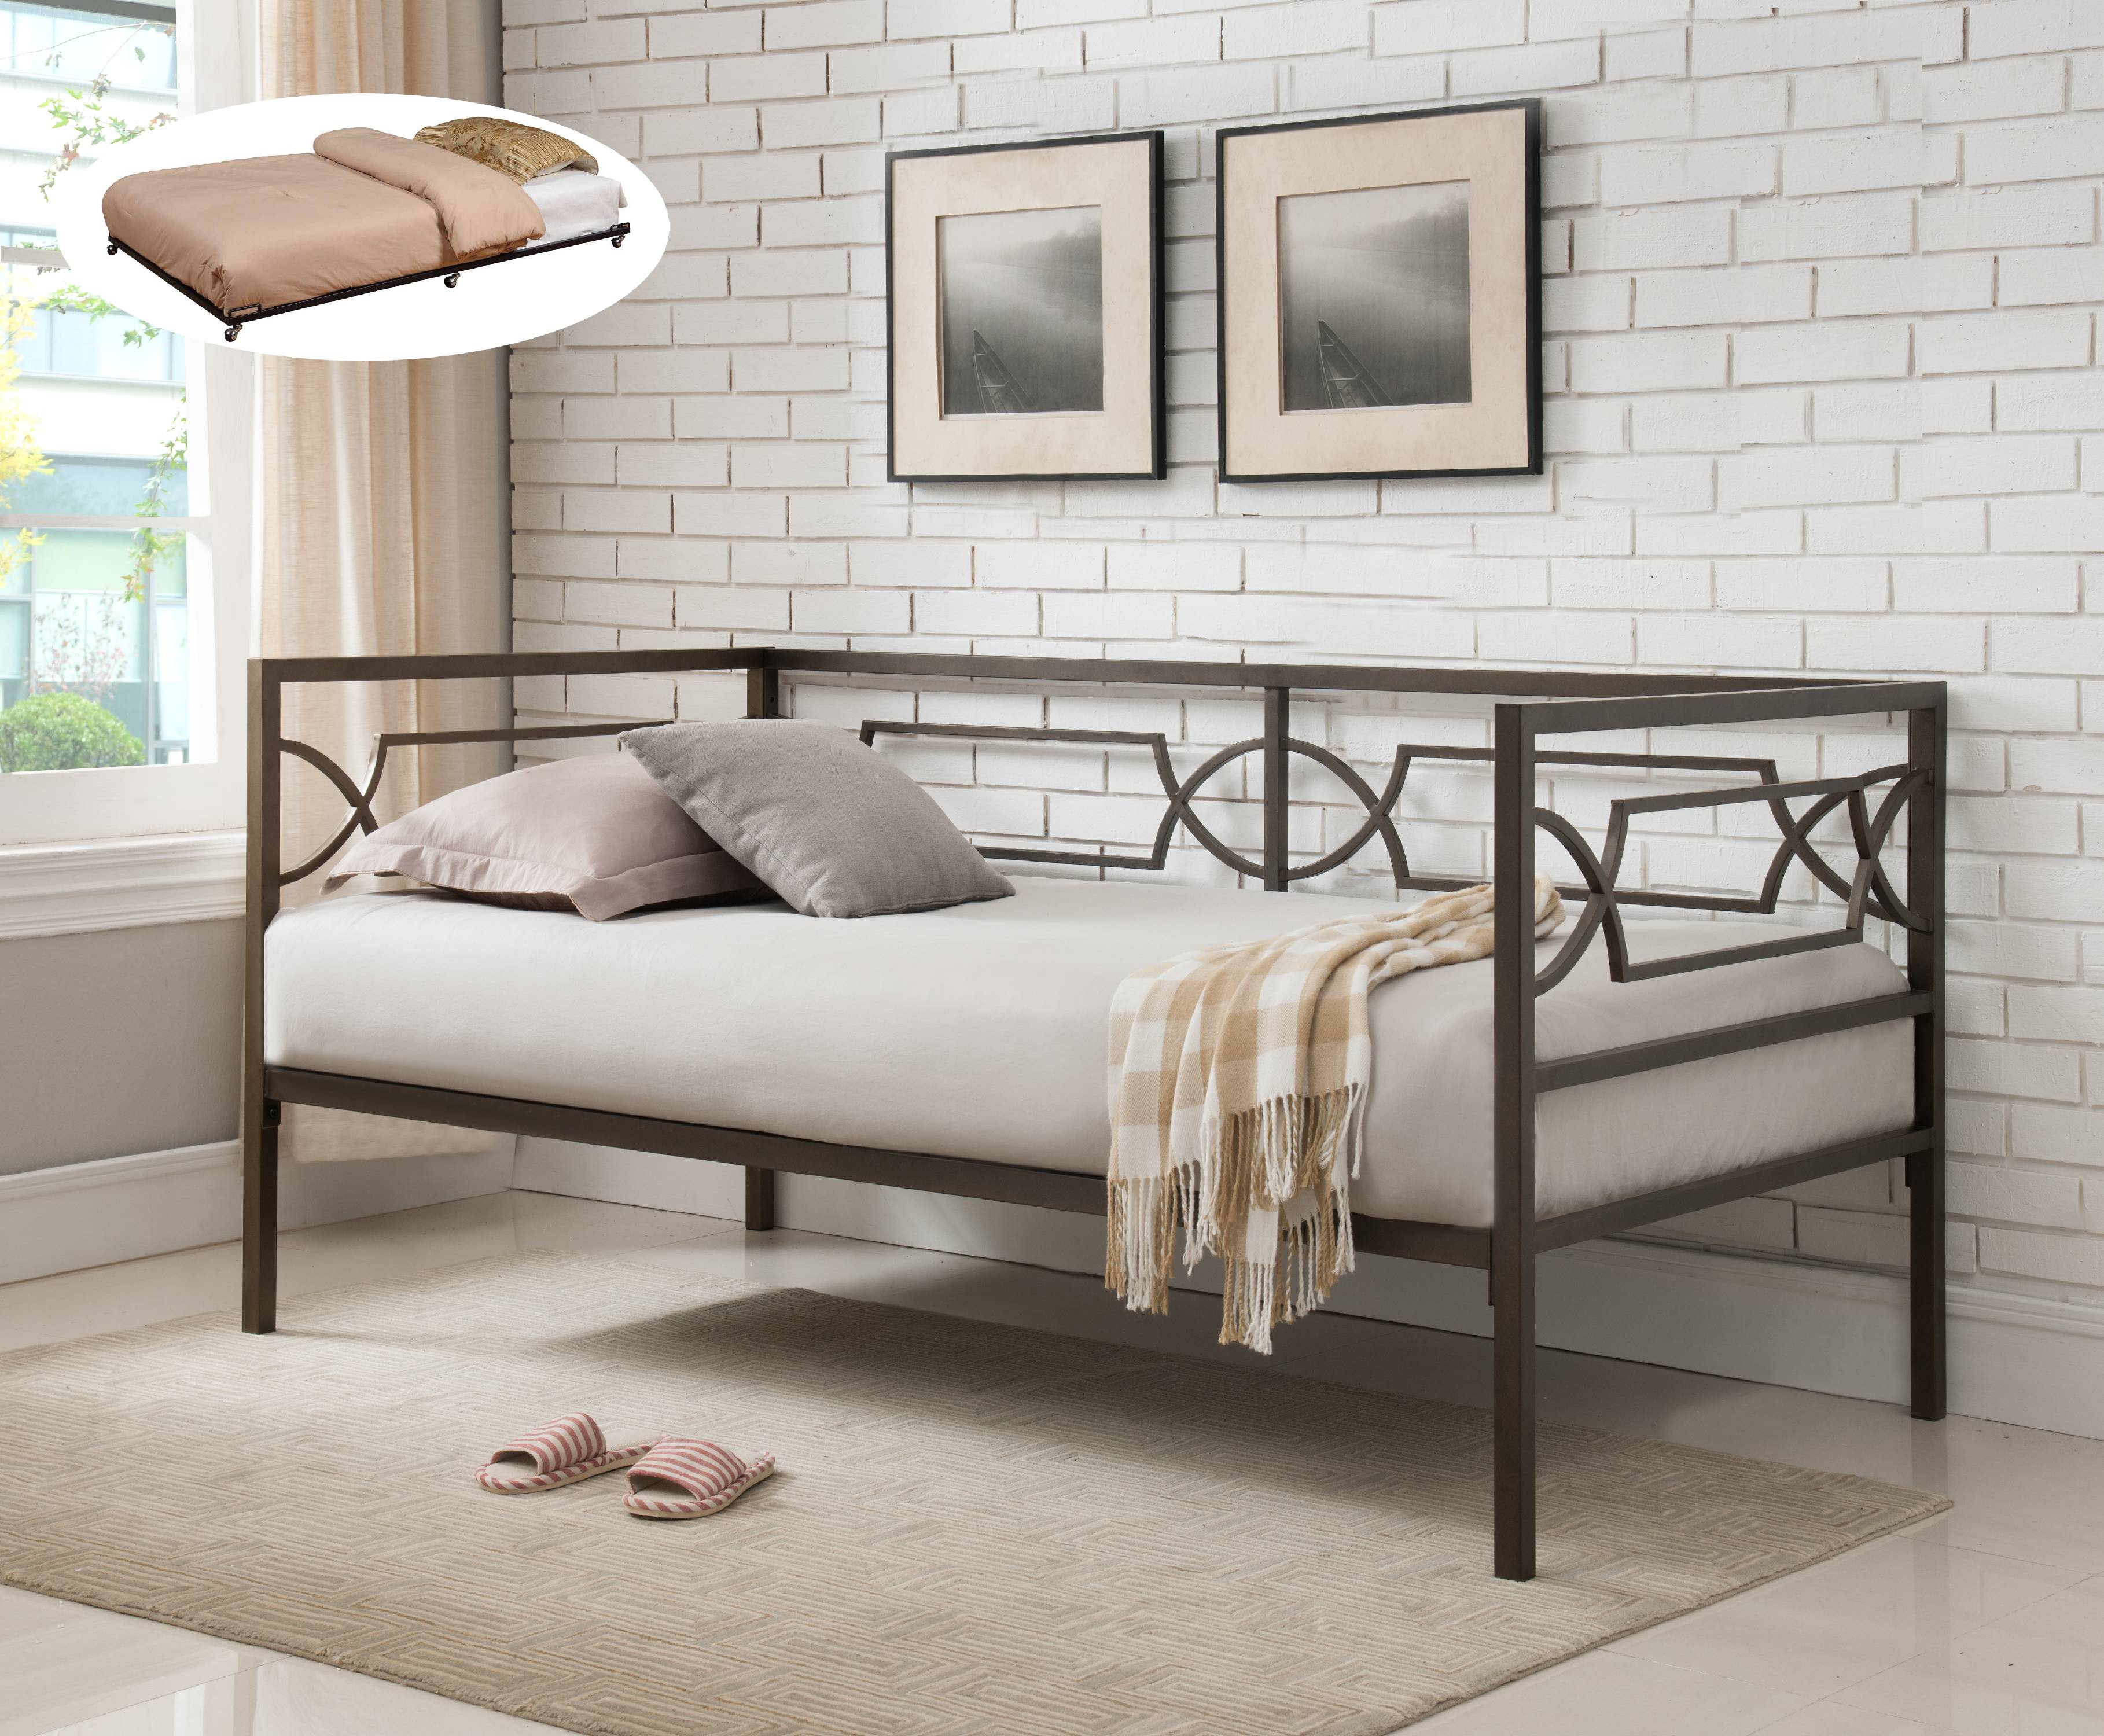 Vegas Pewter Twin Size Metal Day Bed Frame With Black Roll Out Trundle,  Headboard,